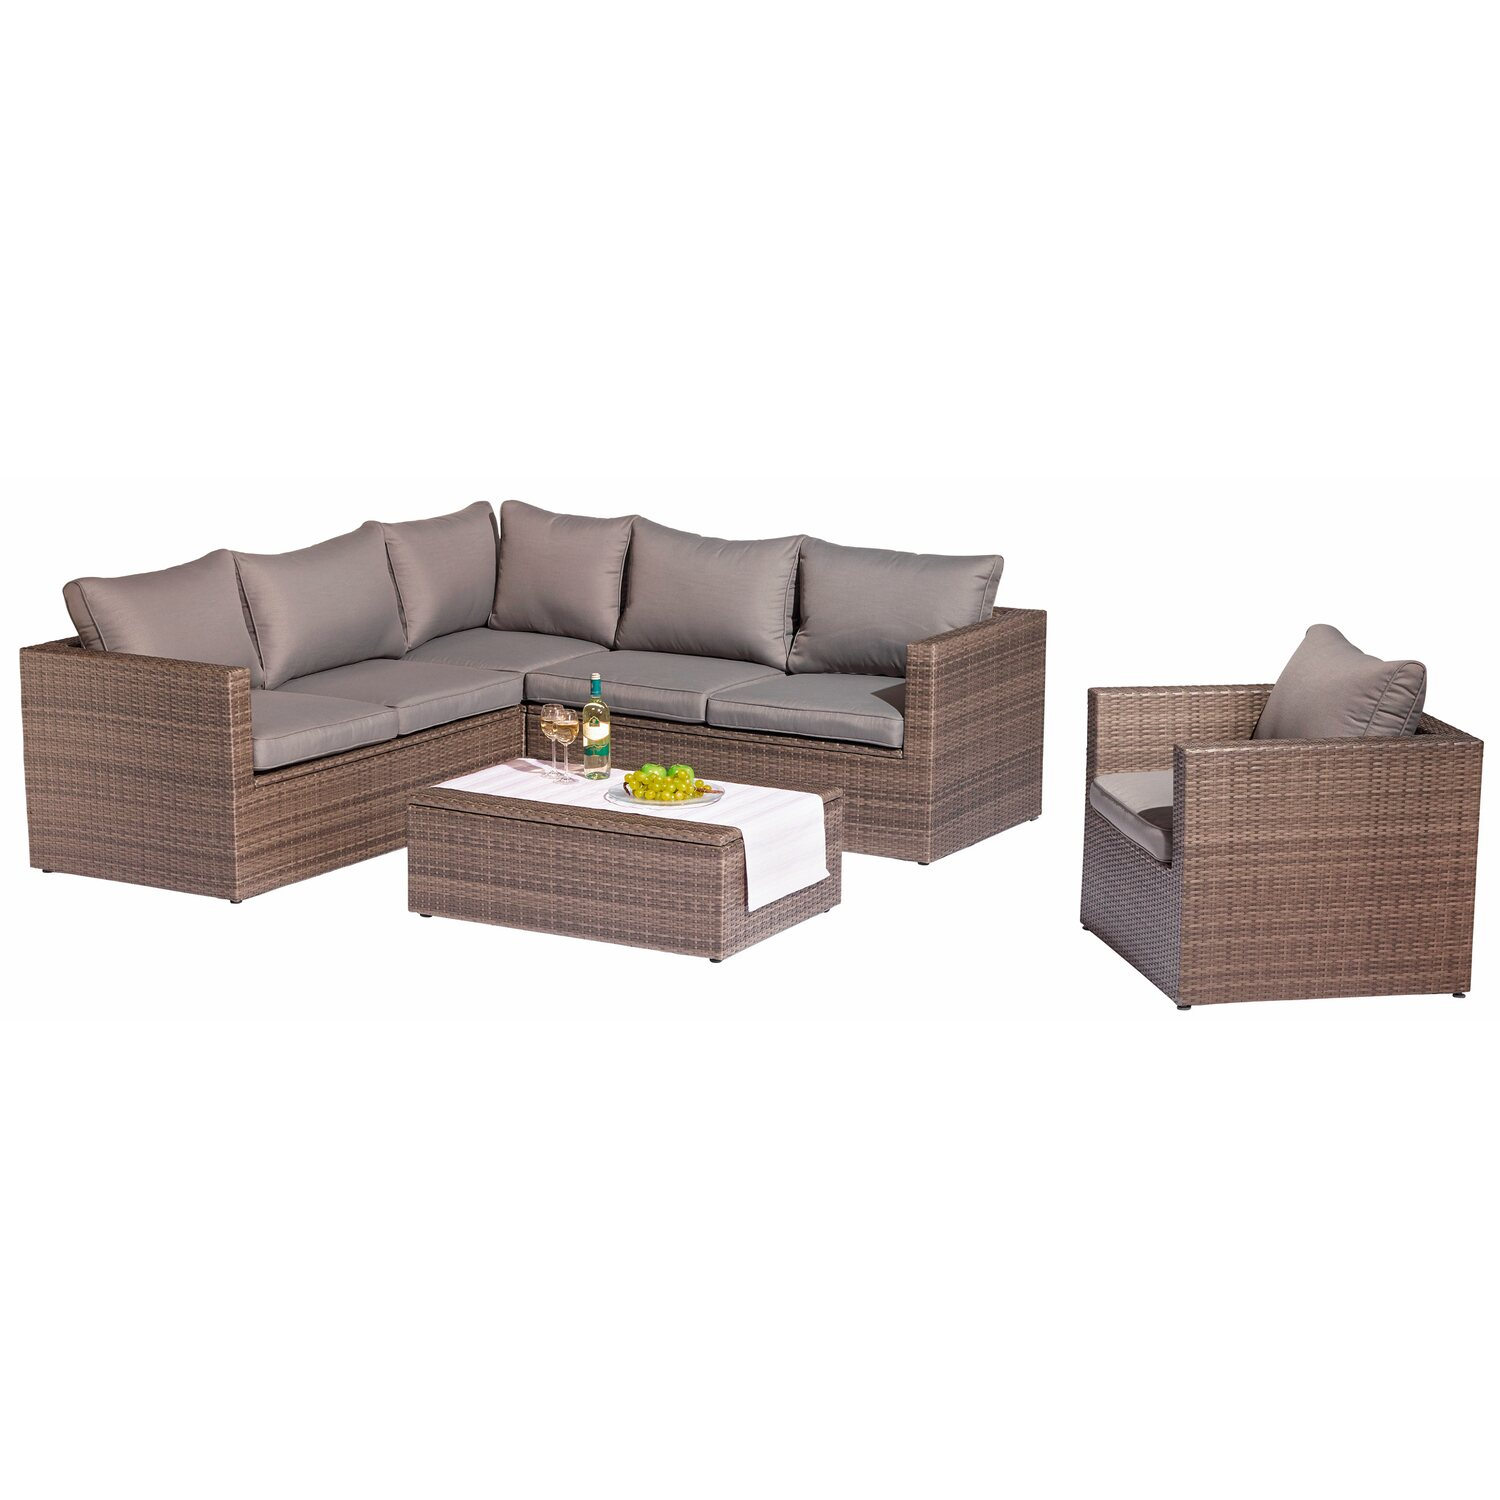 obi gartenm belgruppe livingston 5 teilig kaufen bei obi. Black Bedroom Furniture Sets. Home Design Ideas